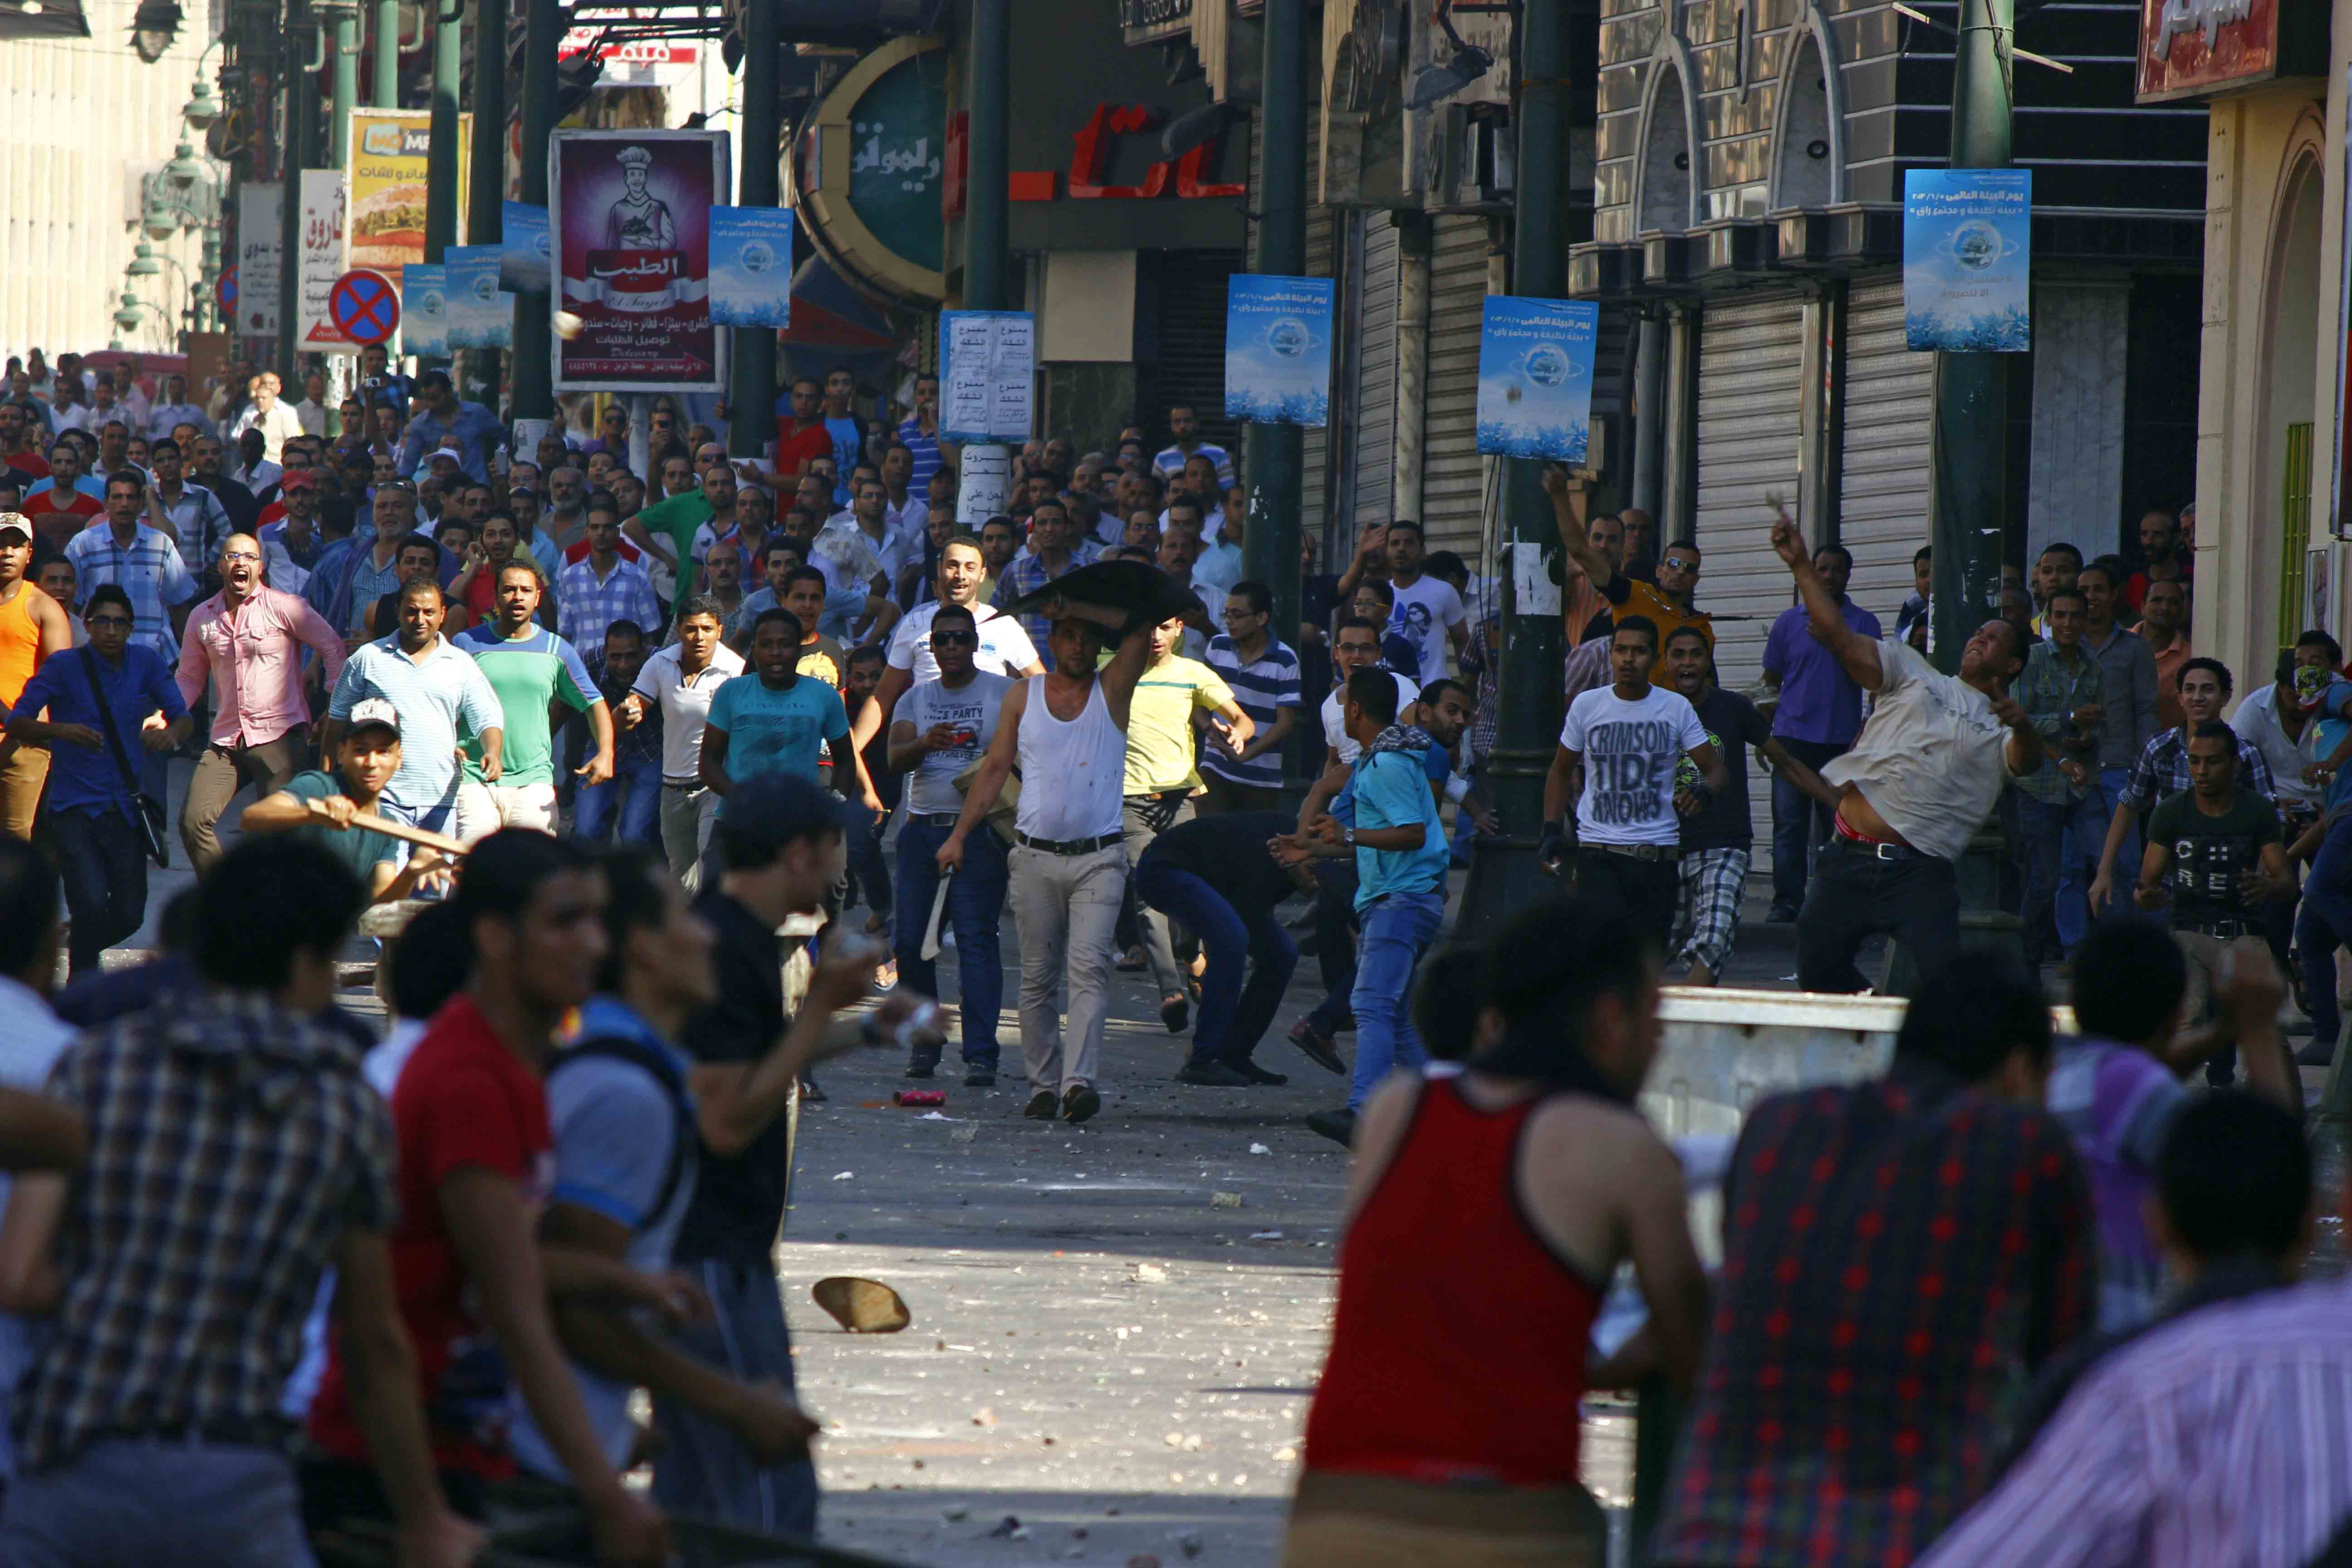 Clashes are still on-going between rival protesters in Alexandria (Photo by Ahmed Arab)